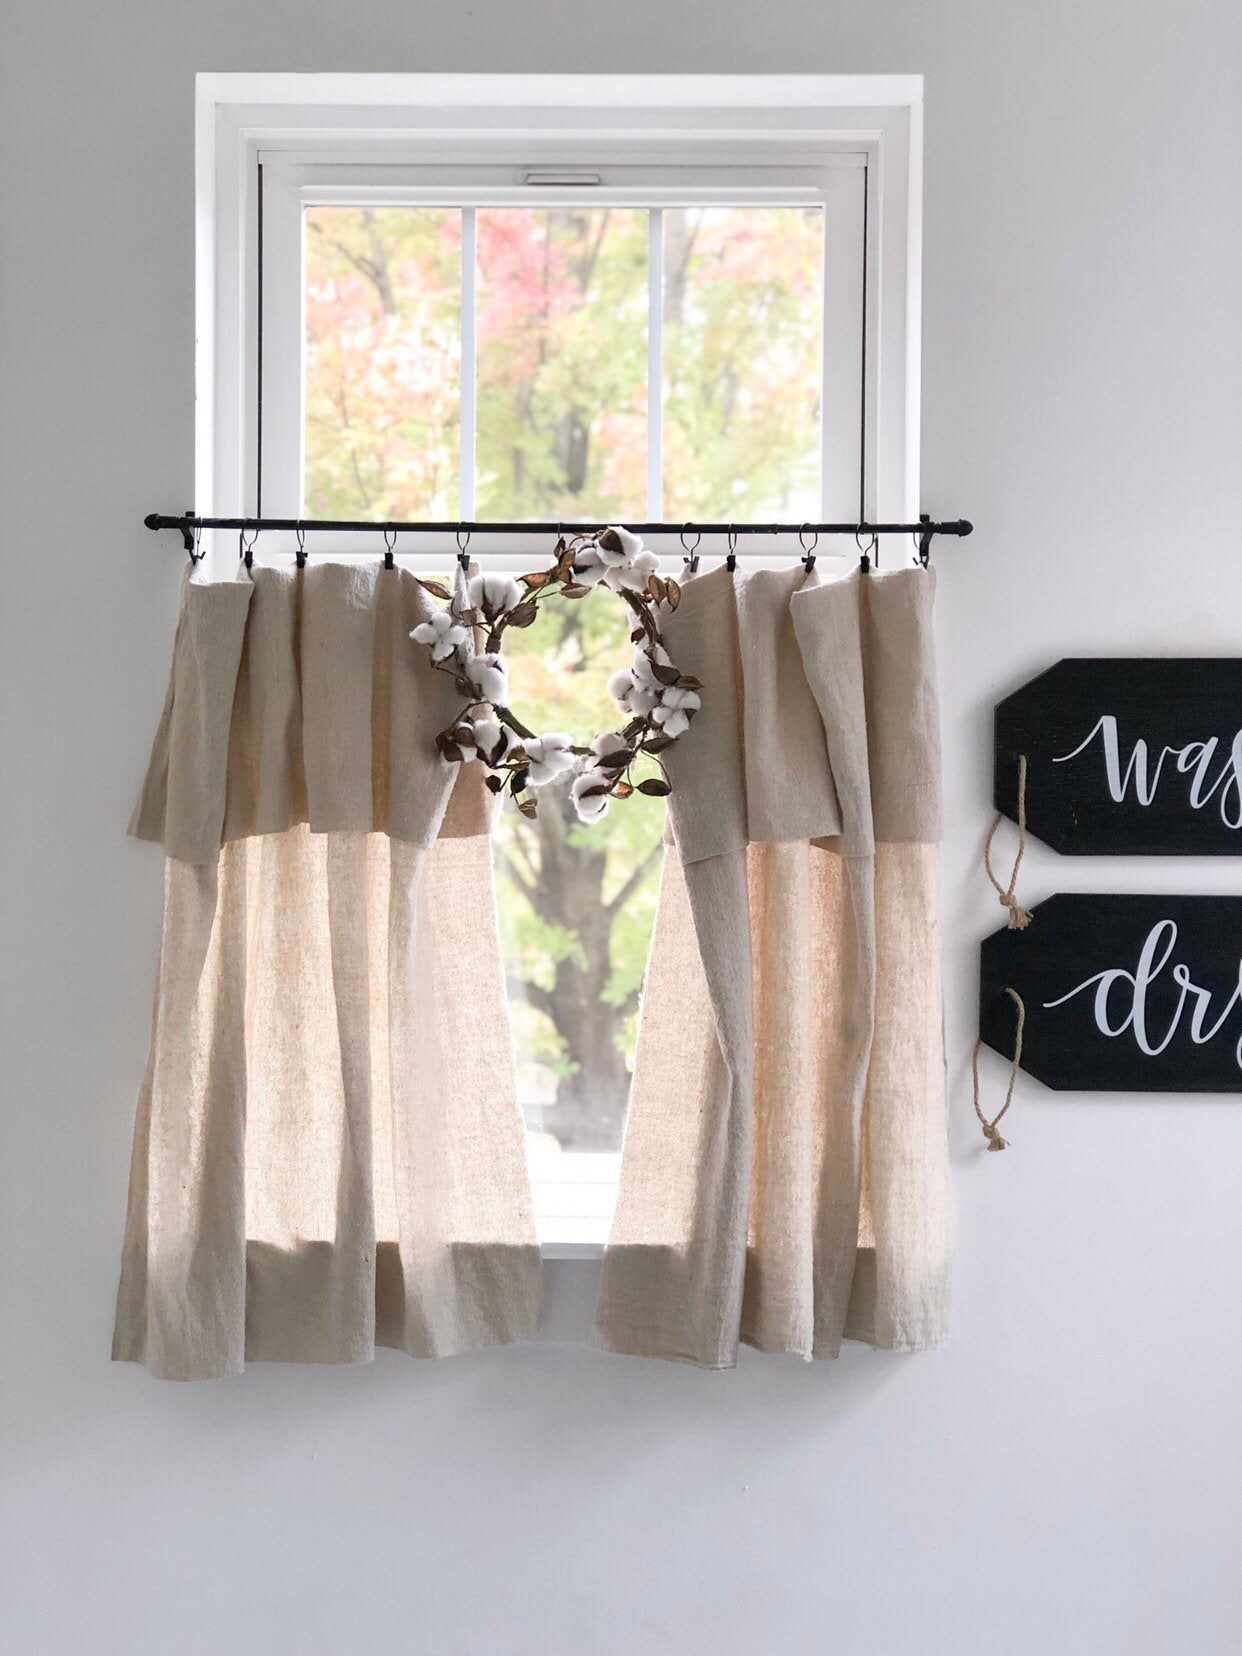 Drop Cloth Cafe Curtains Curtains Cafe Curtains Small Window Curtains